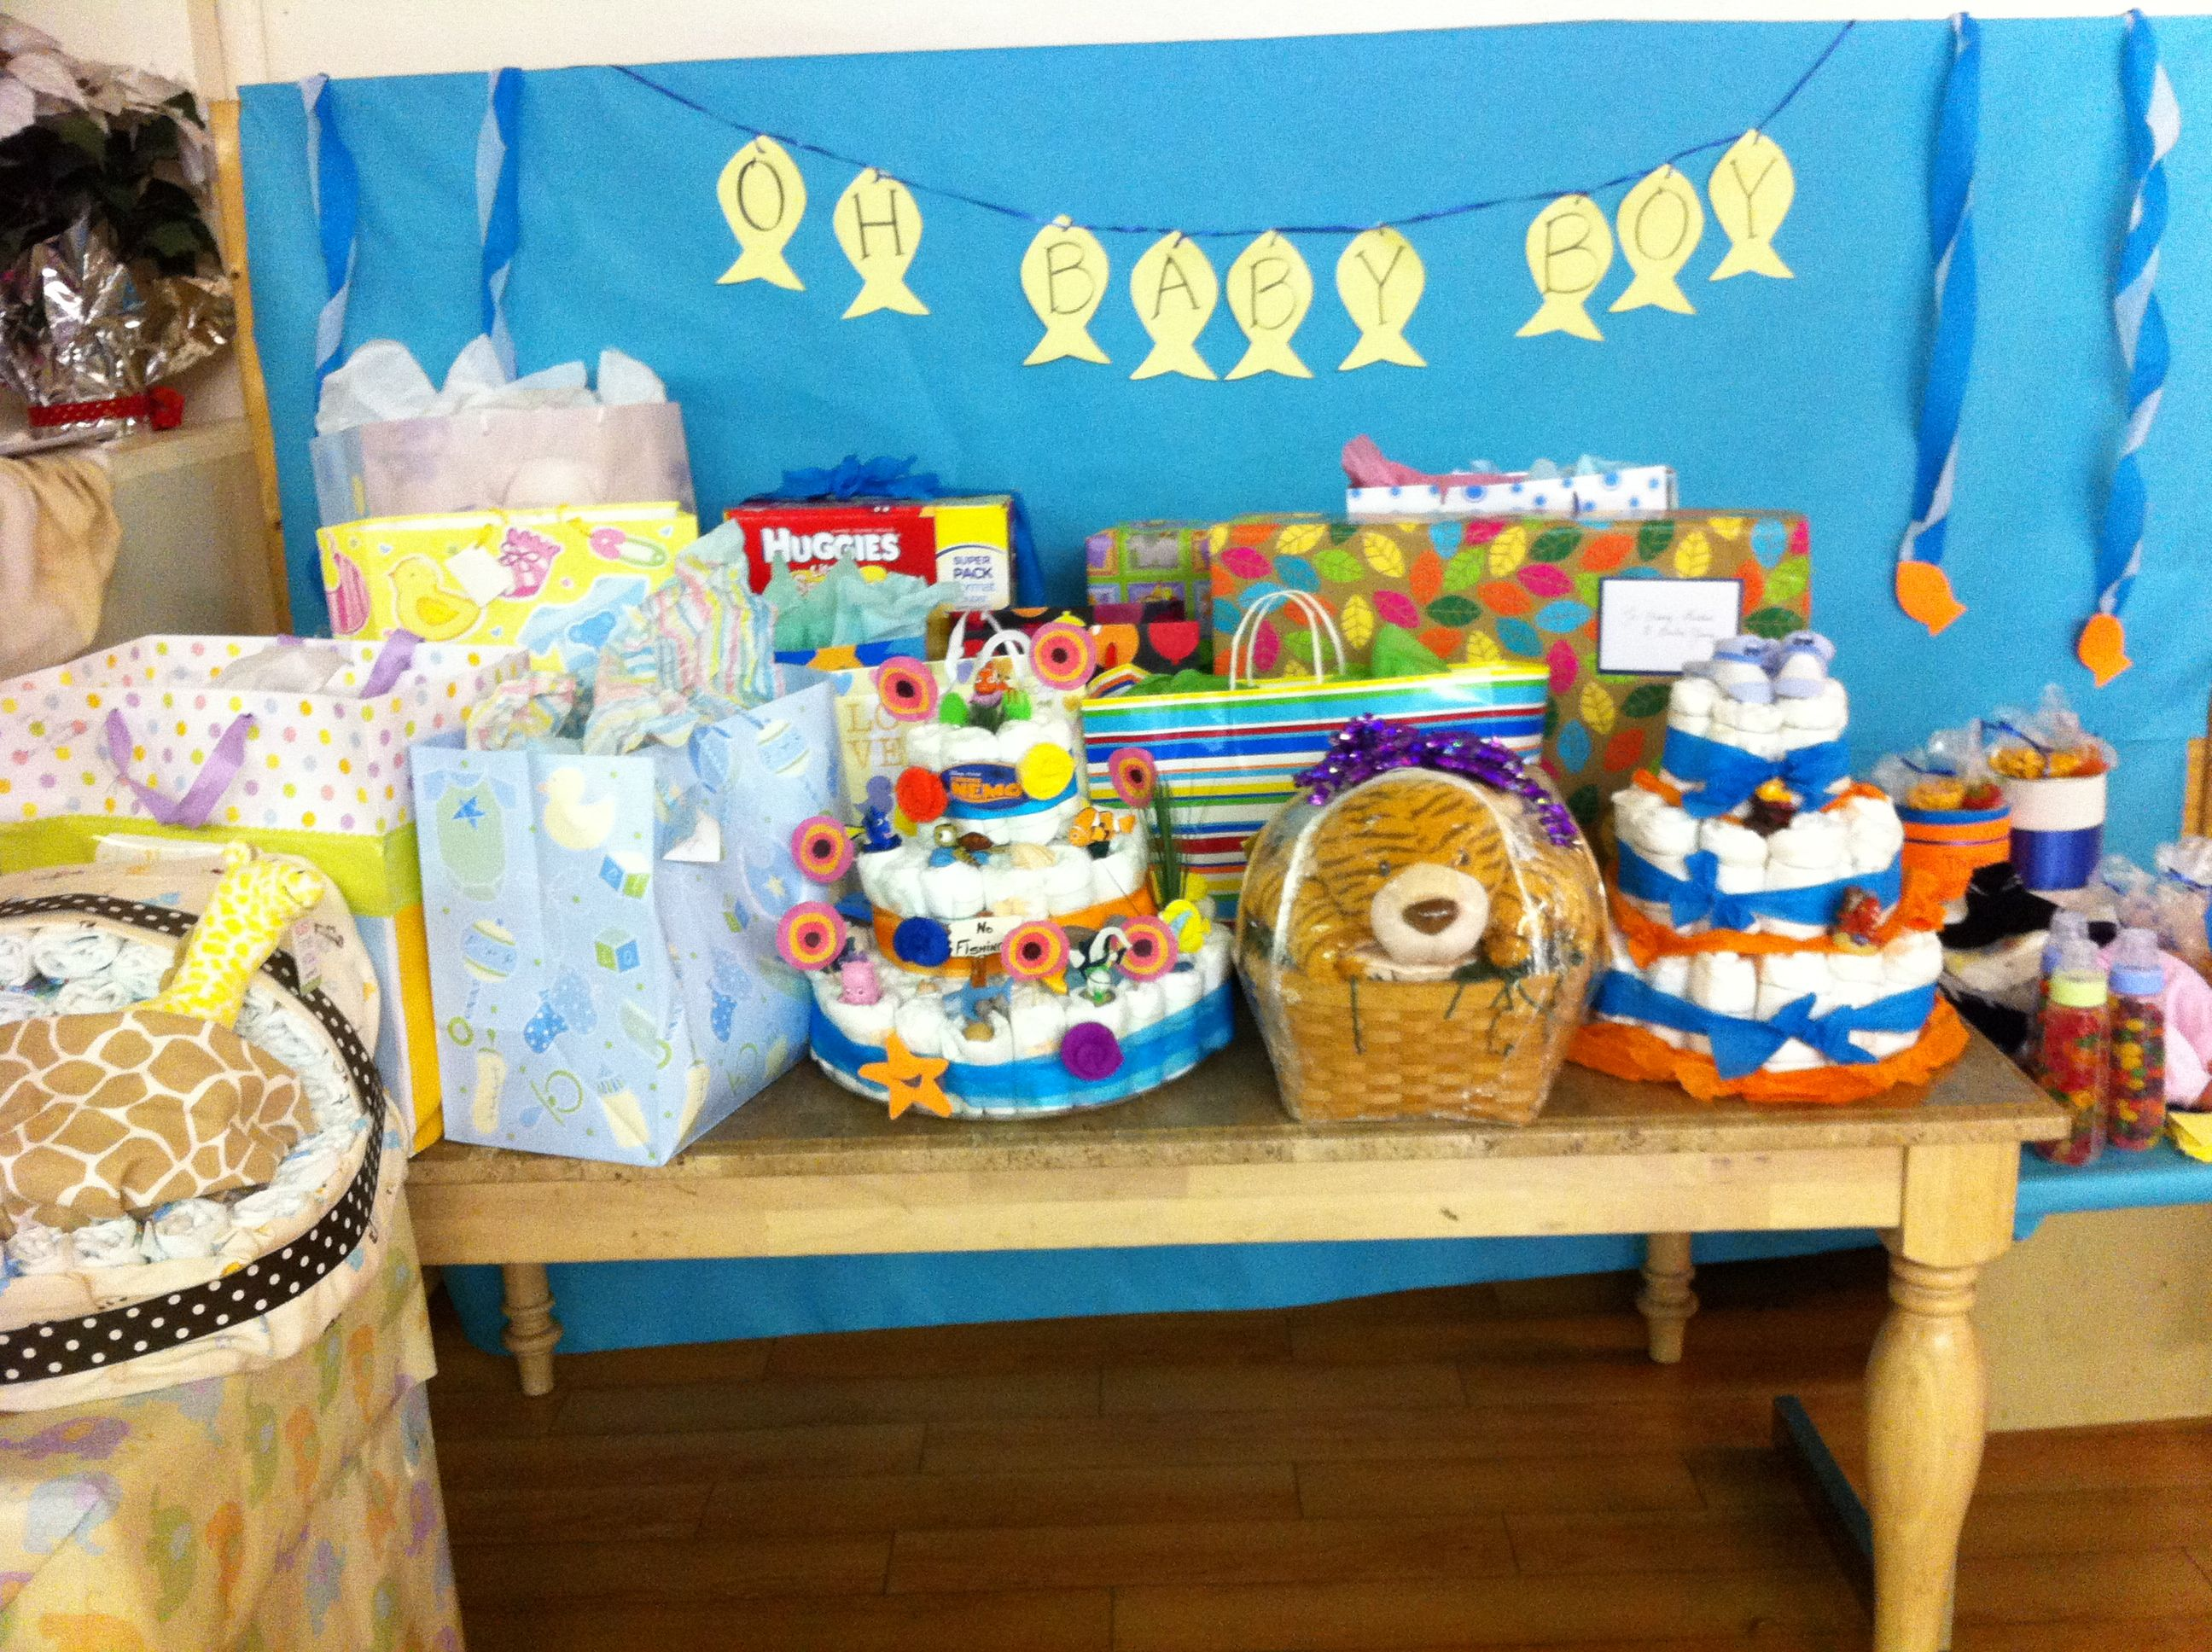 Pamper Me Gift Ideas: Fish Theme Baby Shower - Gift Table